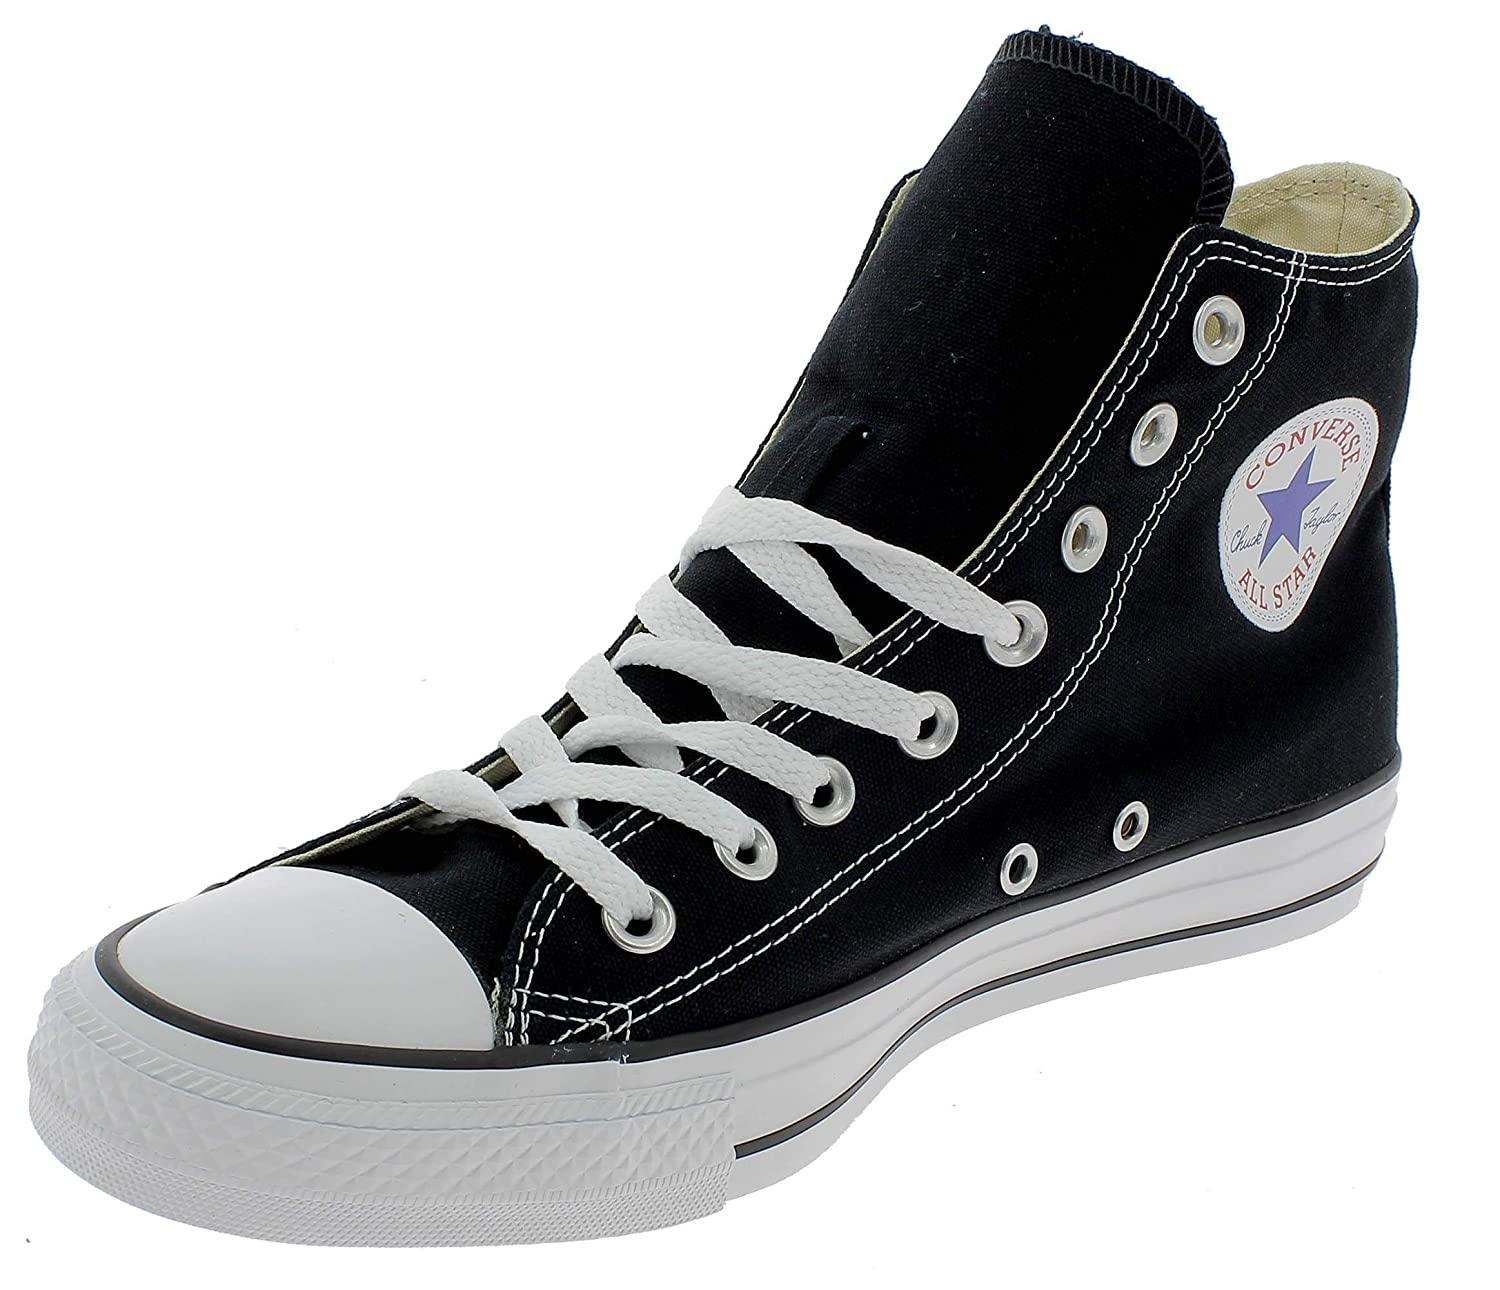 170eb0be6a7 Amazon.com | Converse Unisex Chuck Taylor All Star Core Hi Classic Black  Sneaker Men's 4.5, Women's 6.5 Medium | Fashion Sneakers